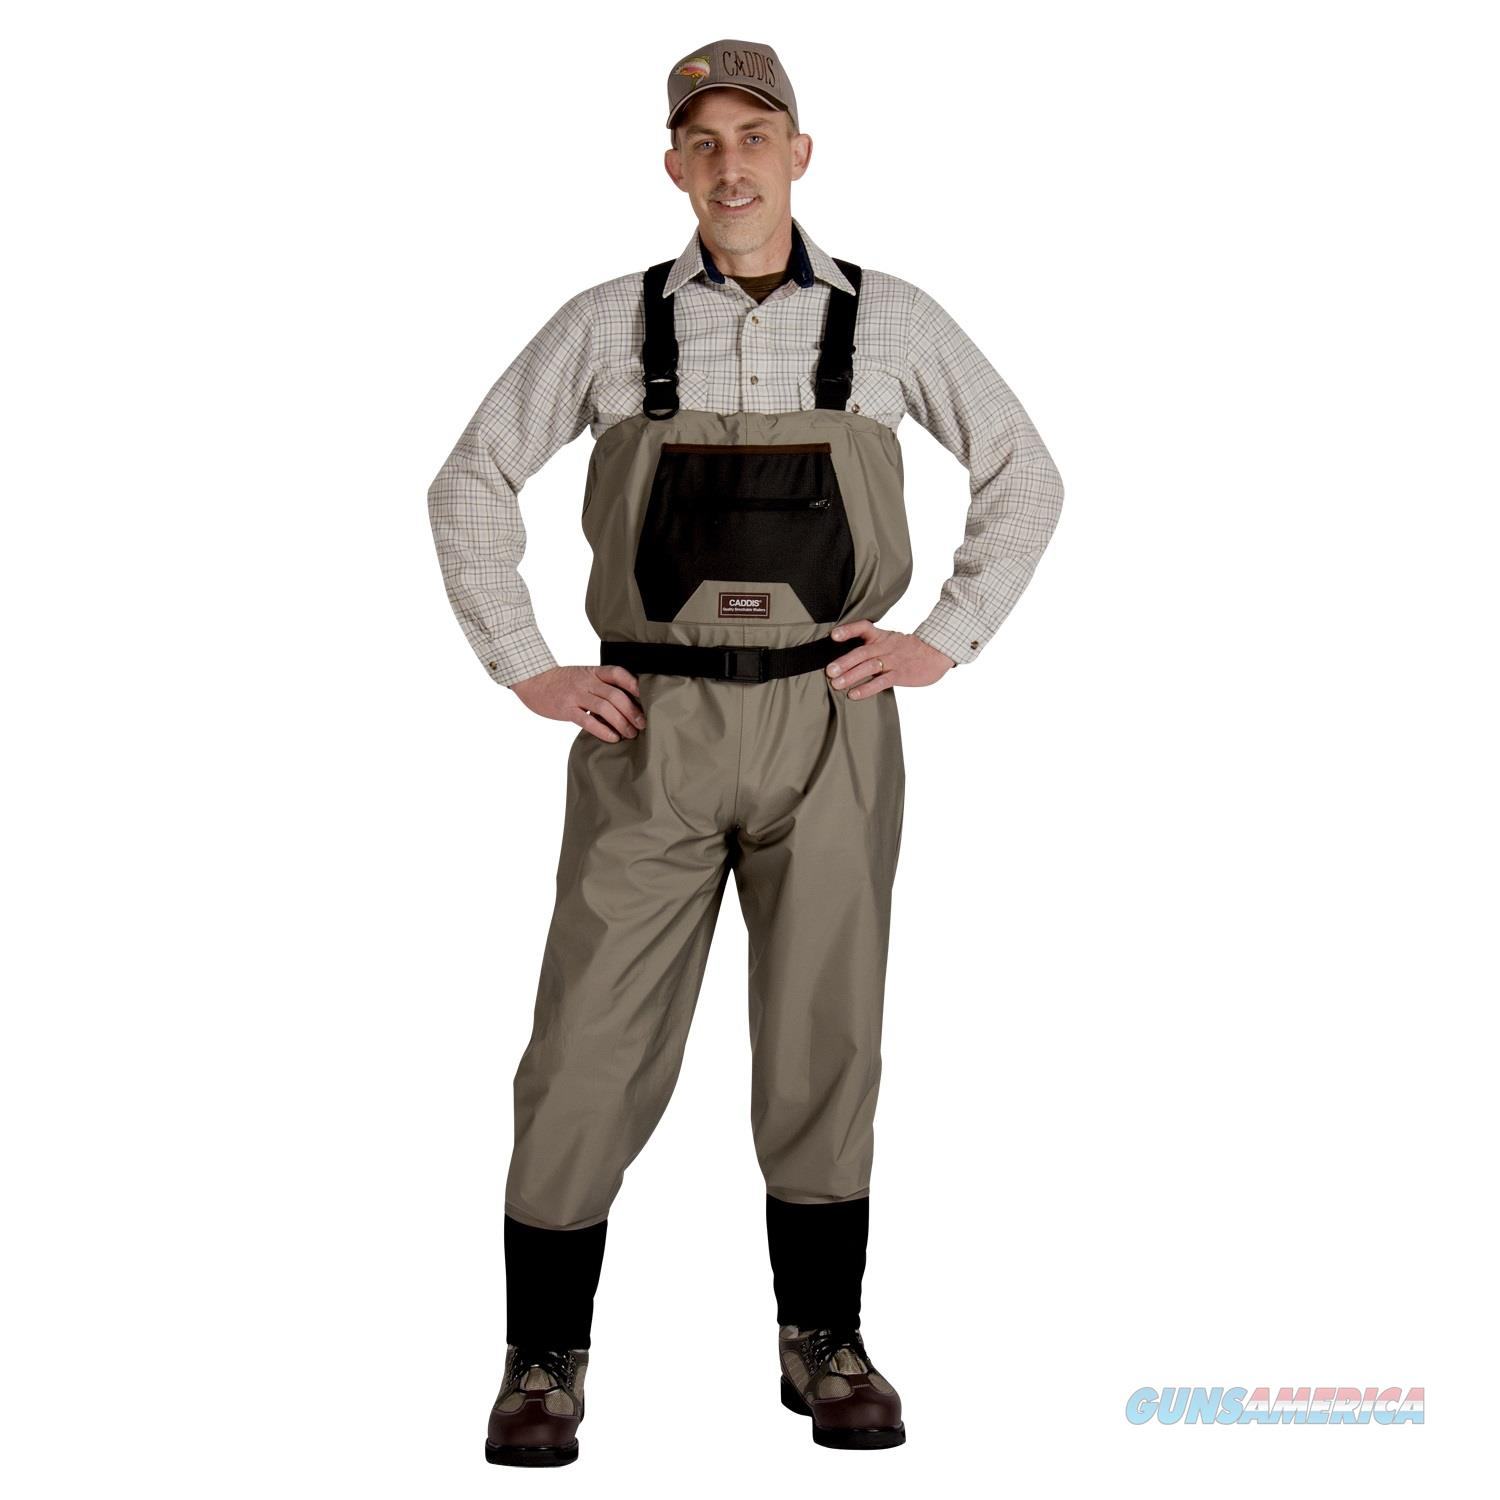 Caddis Men's Breathable Stockingfoot Waders - Xxl Tan CA9901WXXL  Non-Guns > Fishing/Spearfishing